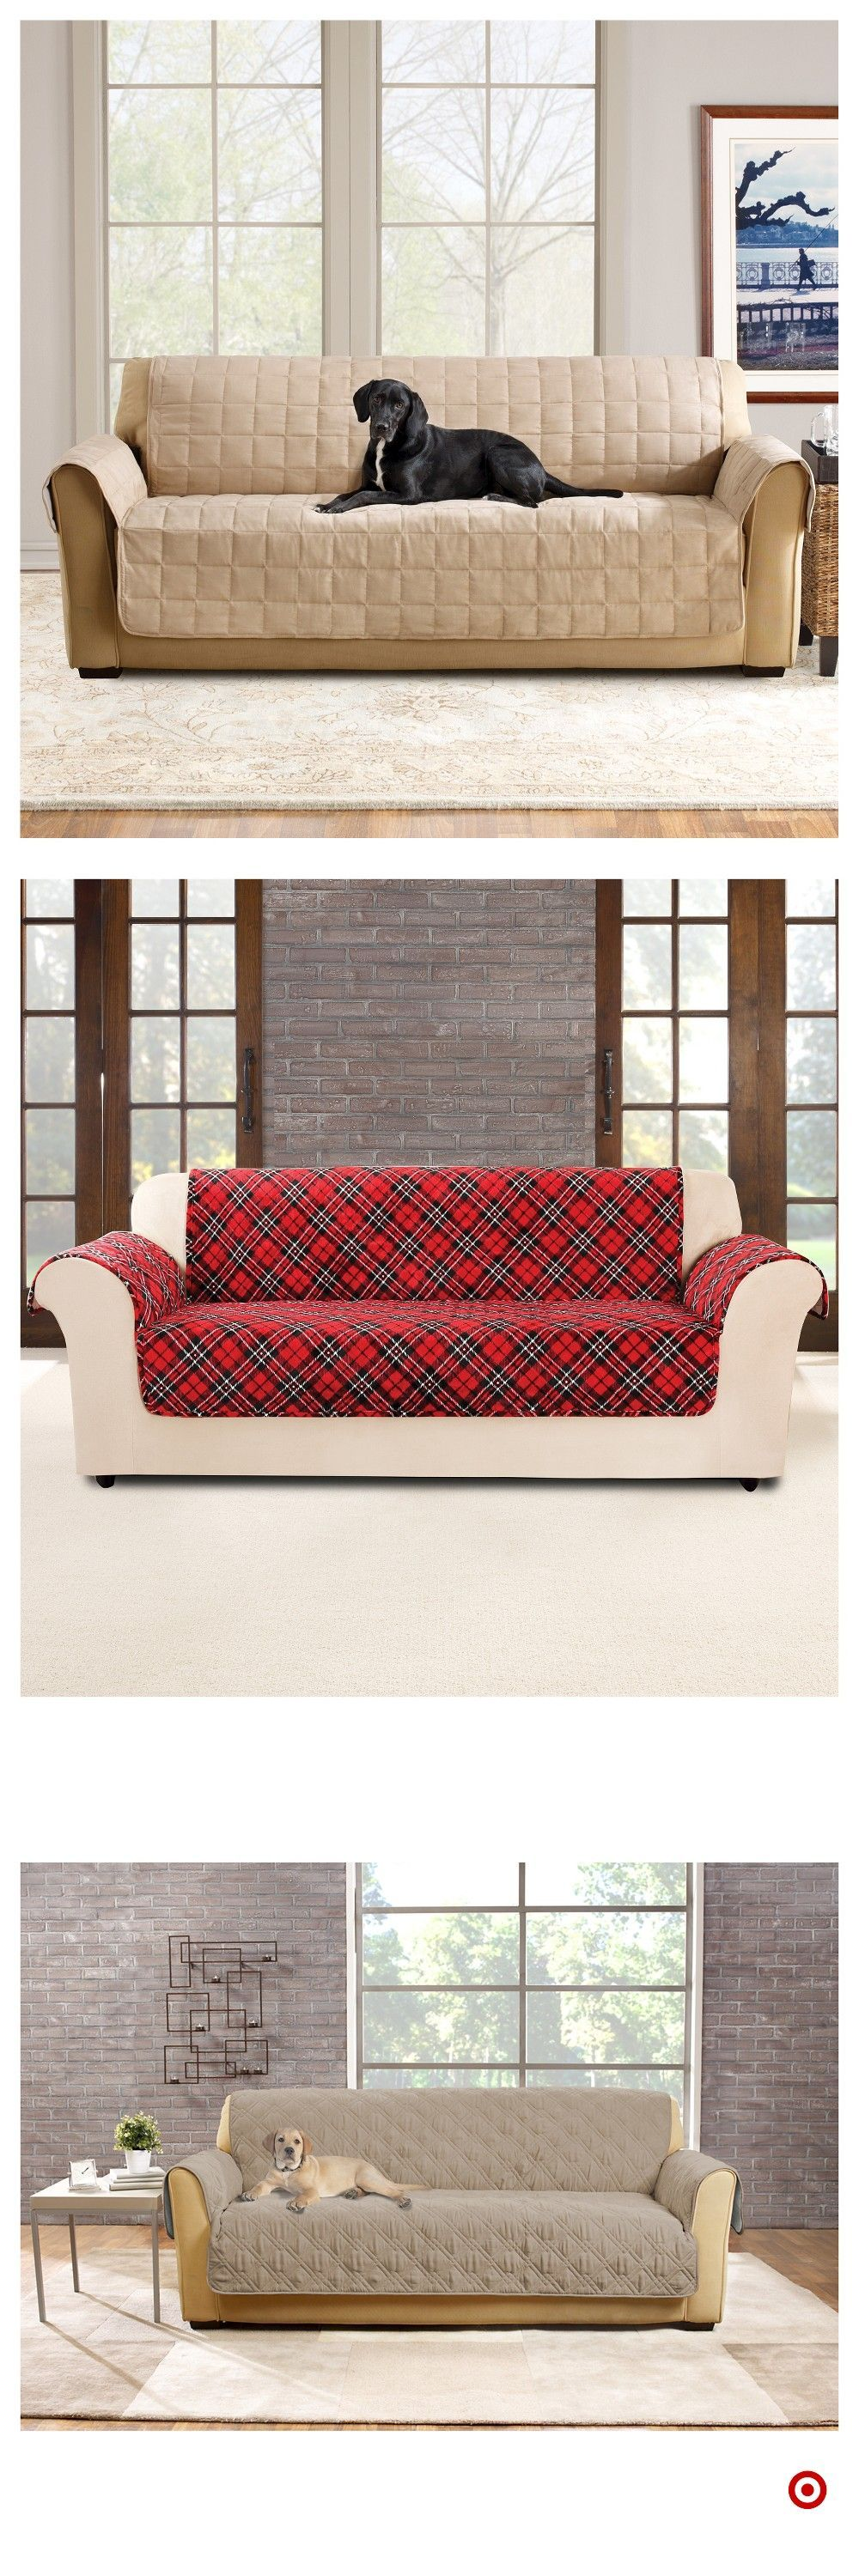 Shop Target for sofa pet throw you will love at great low